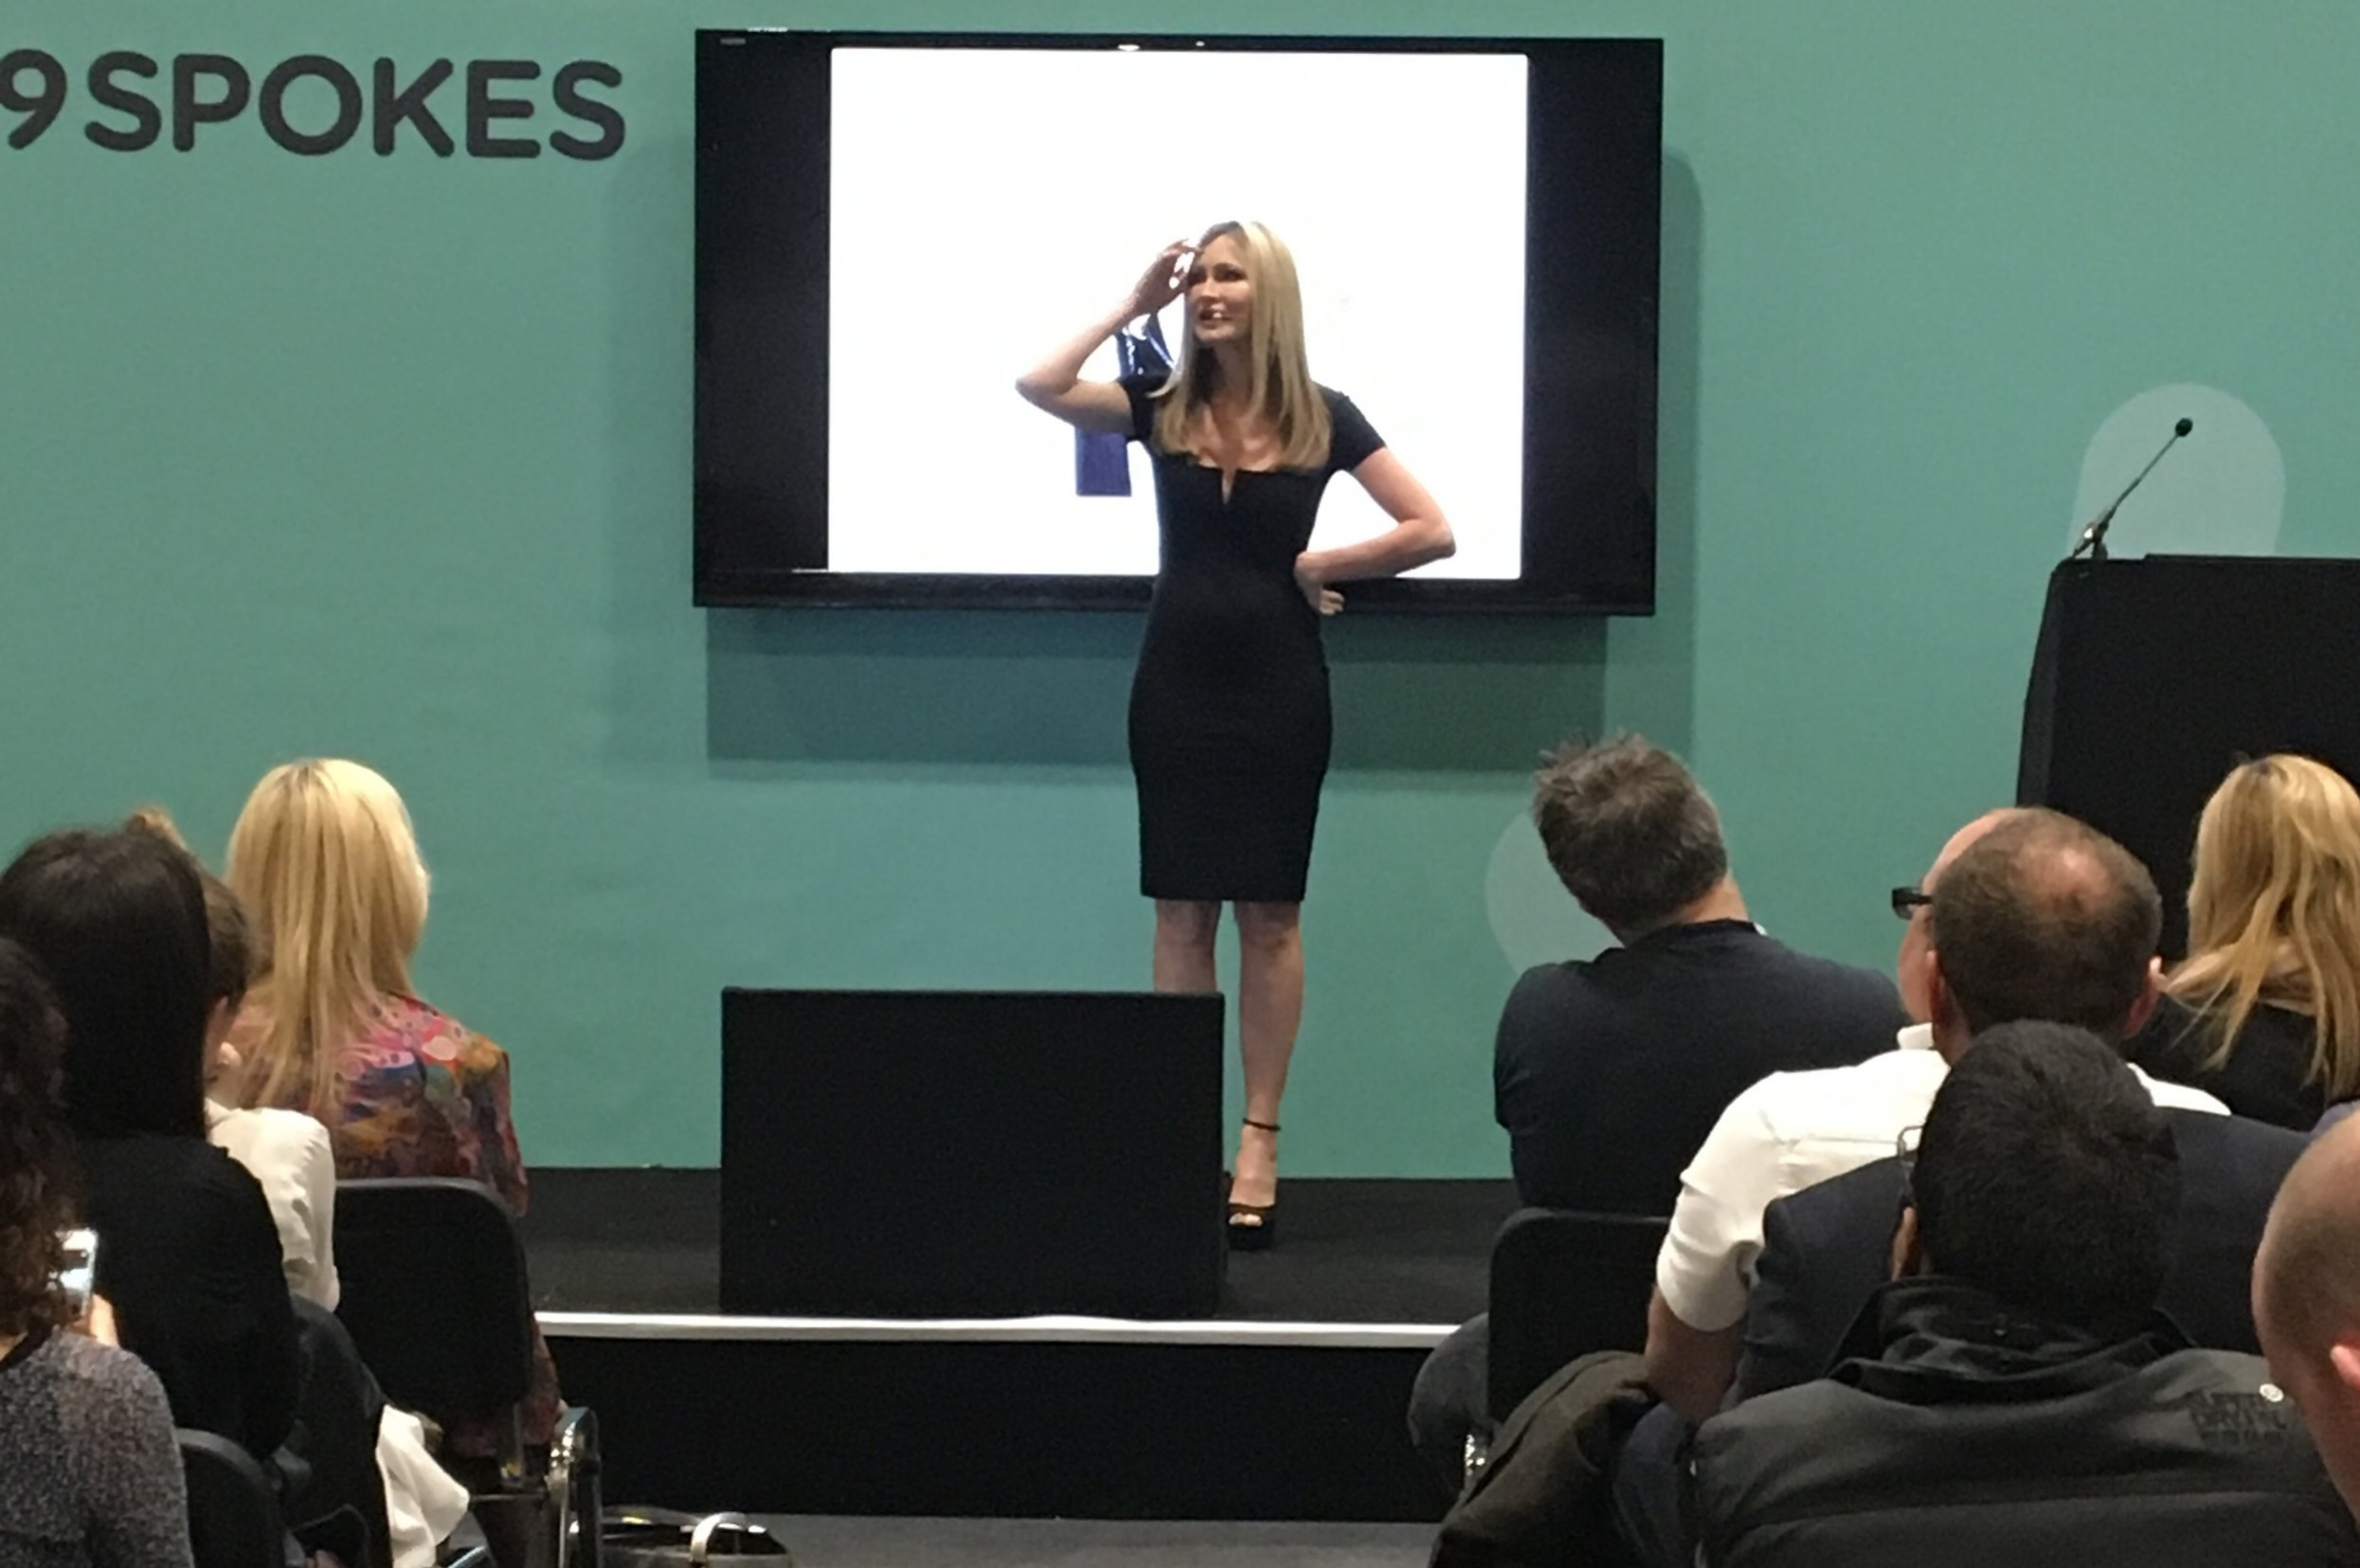 THE BUSINESS SHOW - Caprice headlined at The Business Show at ExCel London. Caprice talked about her rise to fame and career transition into business and entrepreneurship to a record breaking crowd.2017